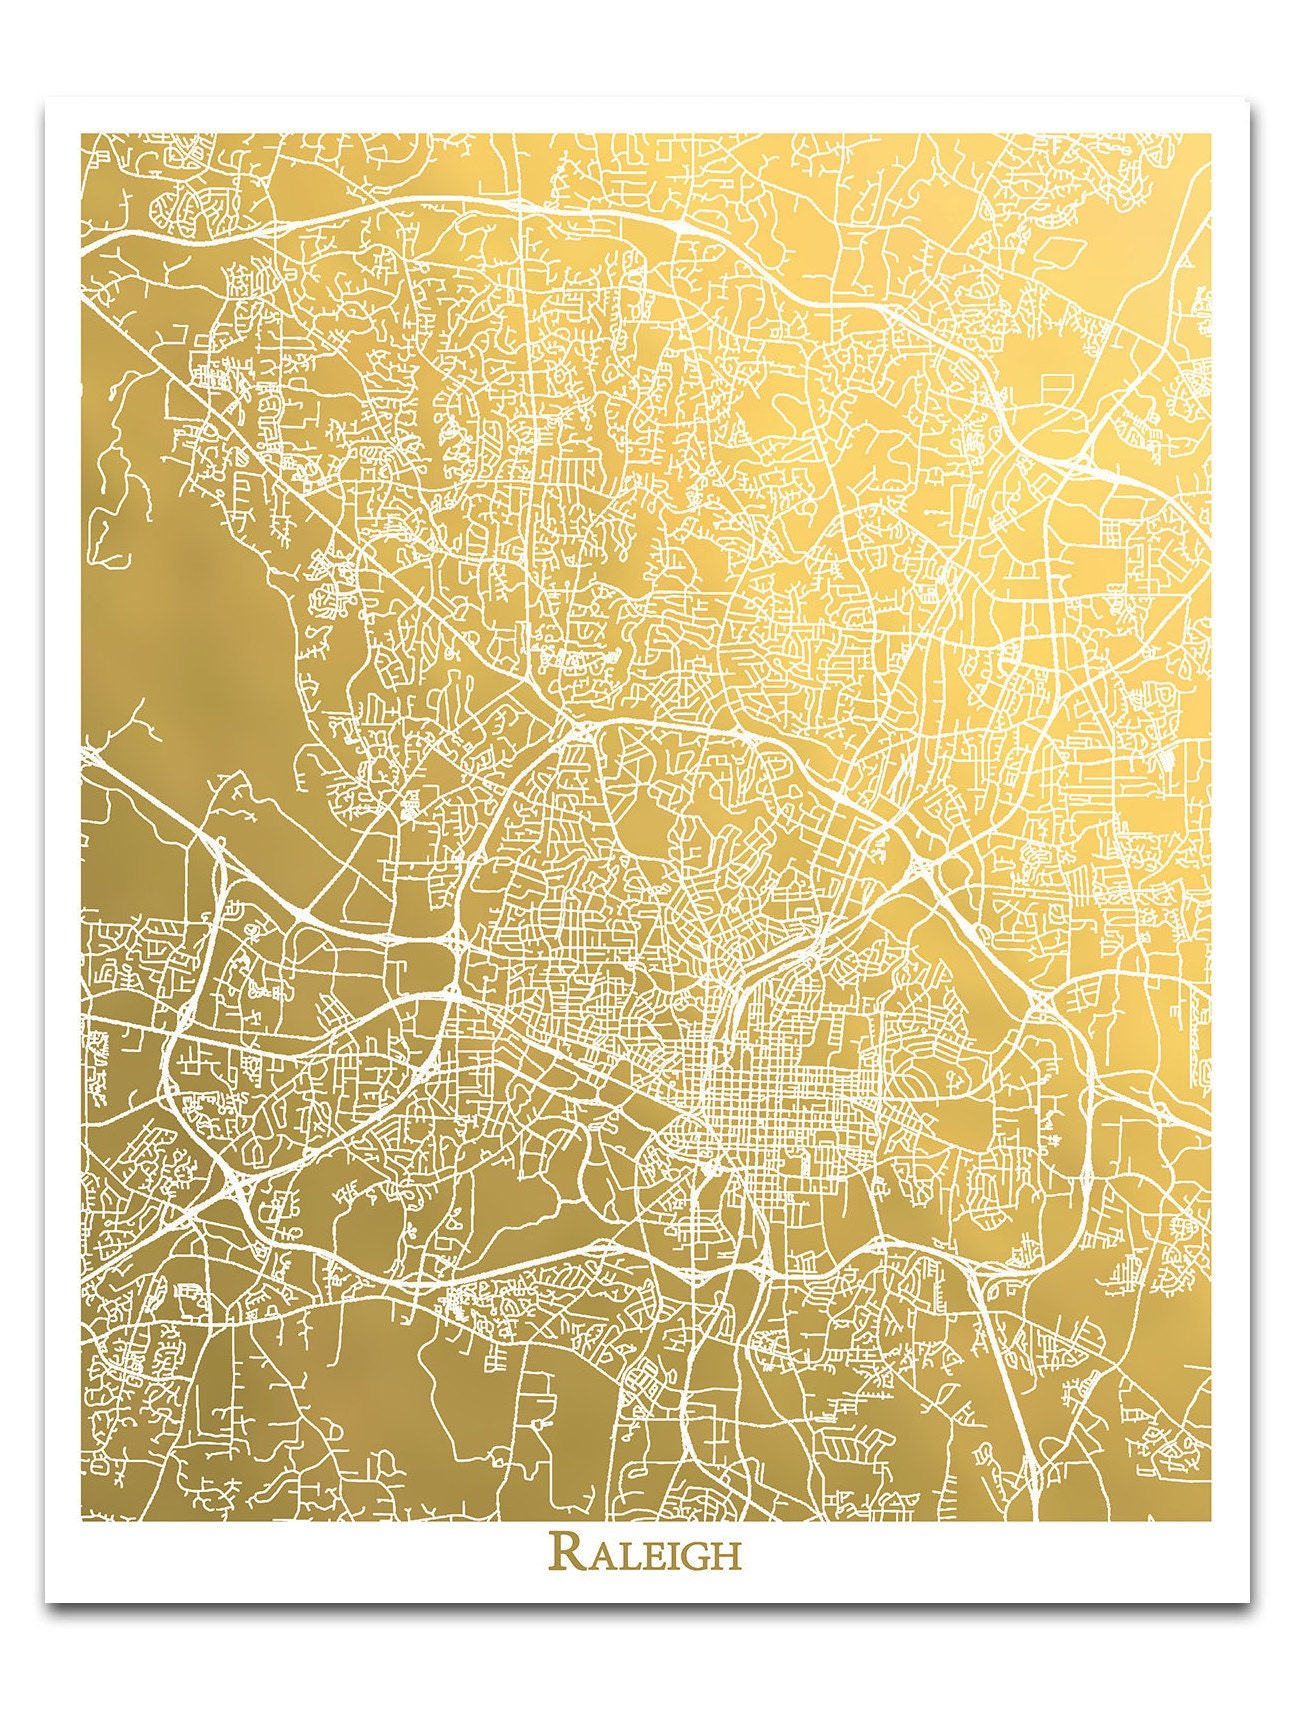 Raleigh Map Gold Foil Print City Map of Raleigh NC Map   Etsy